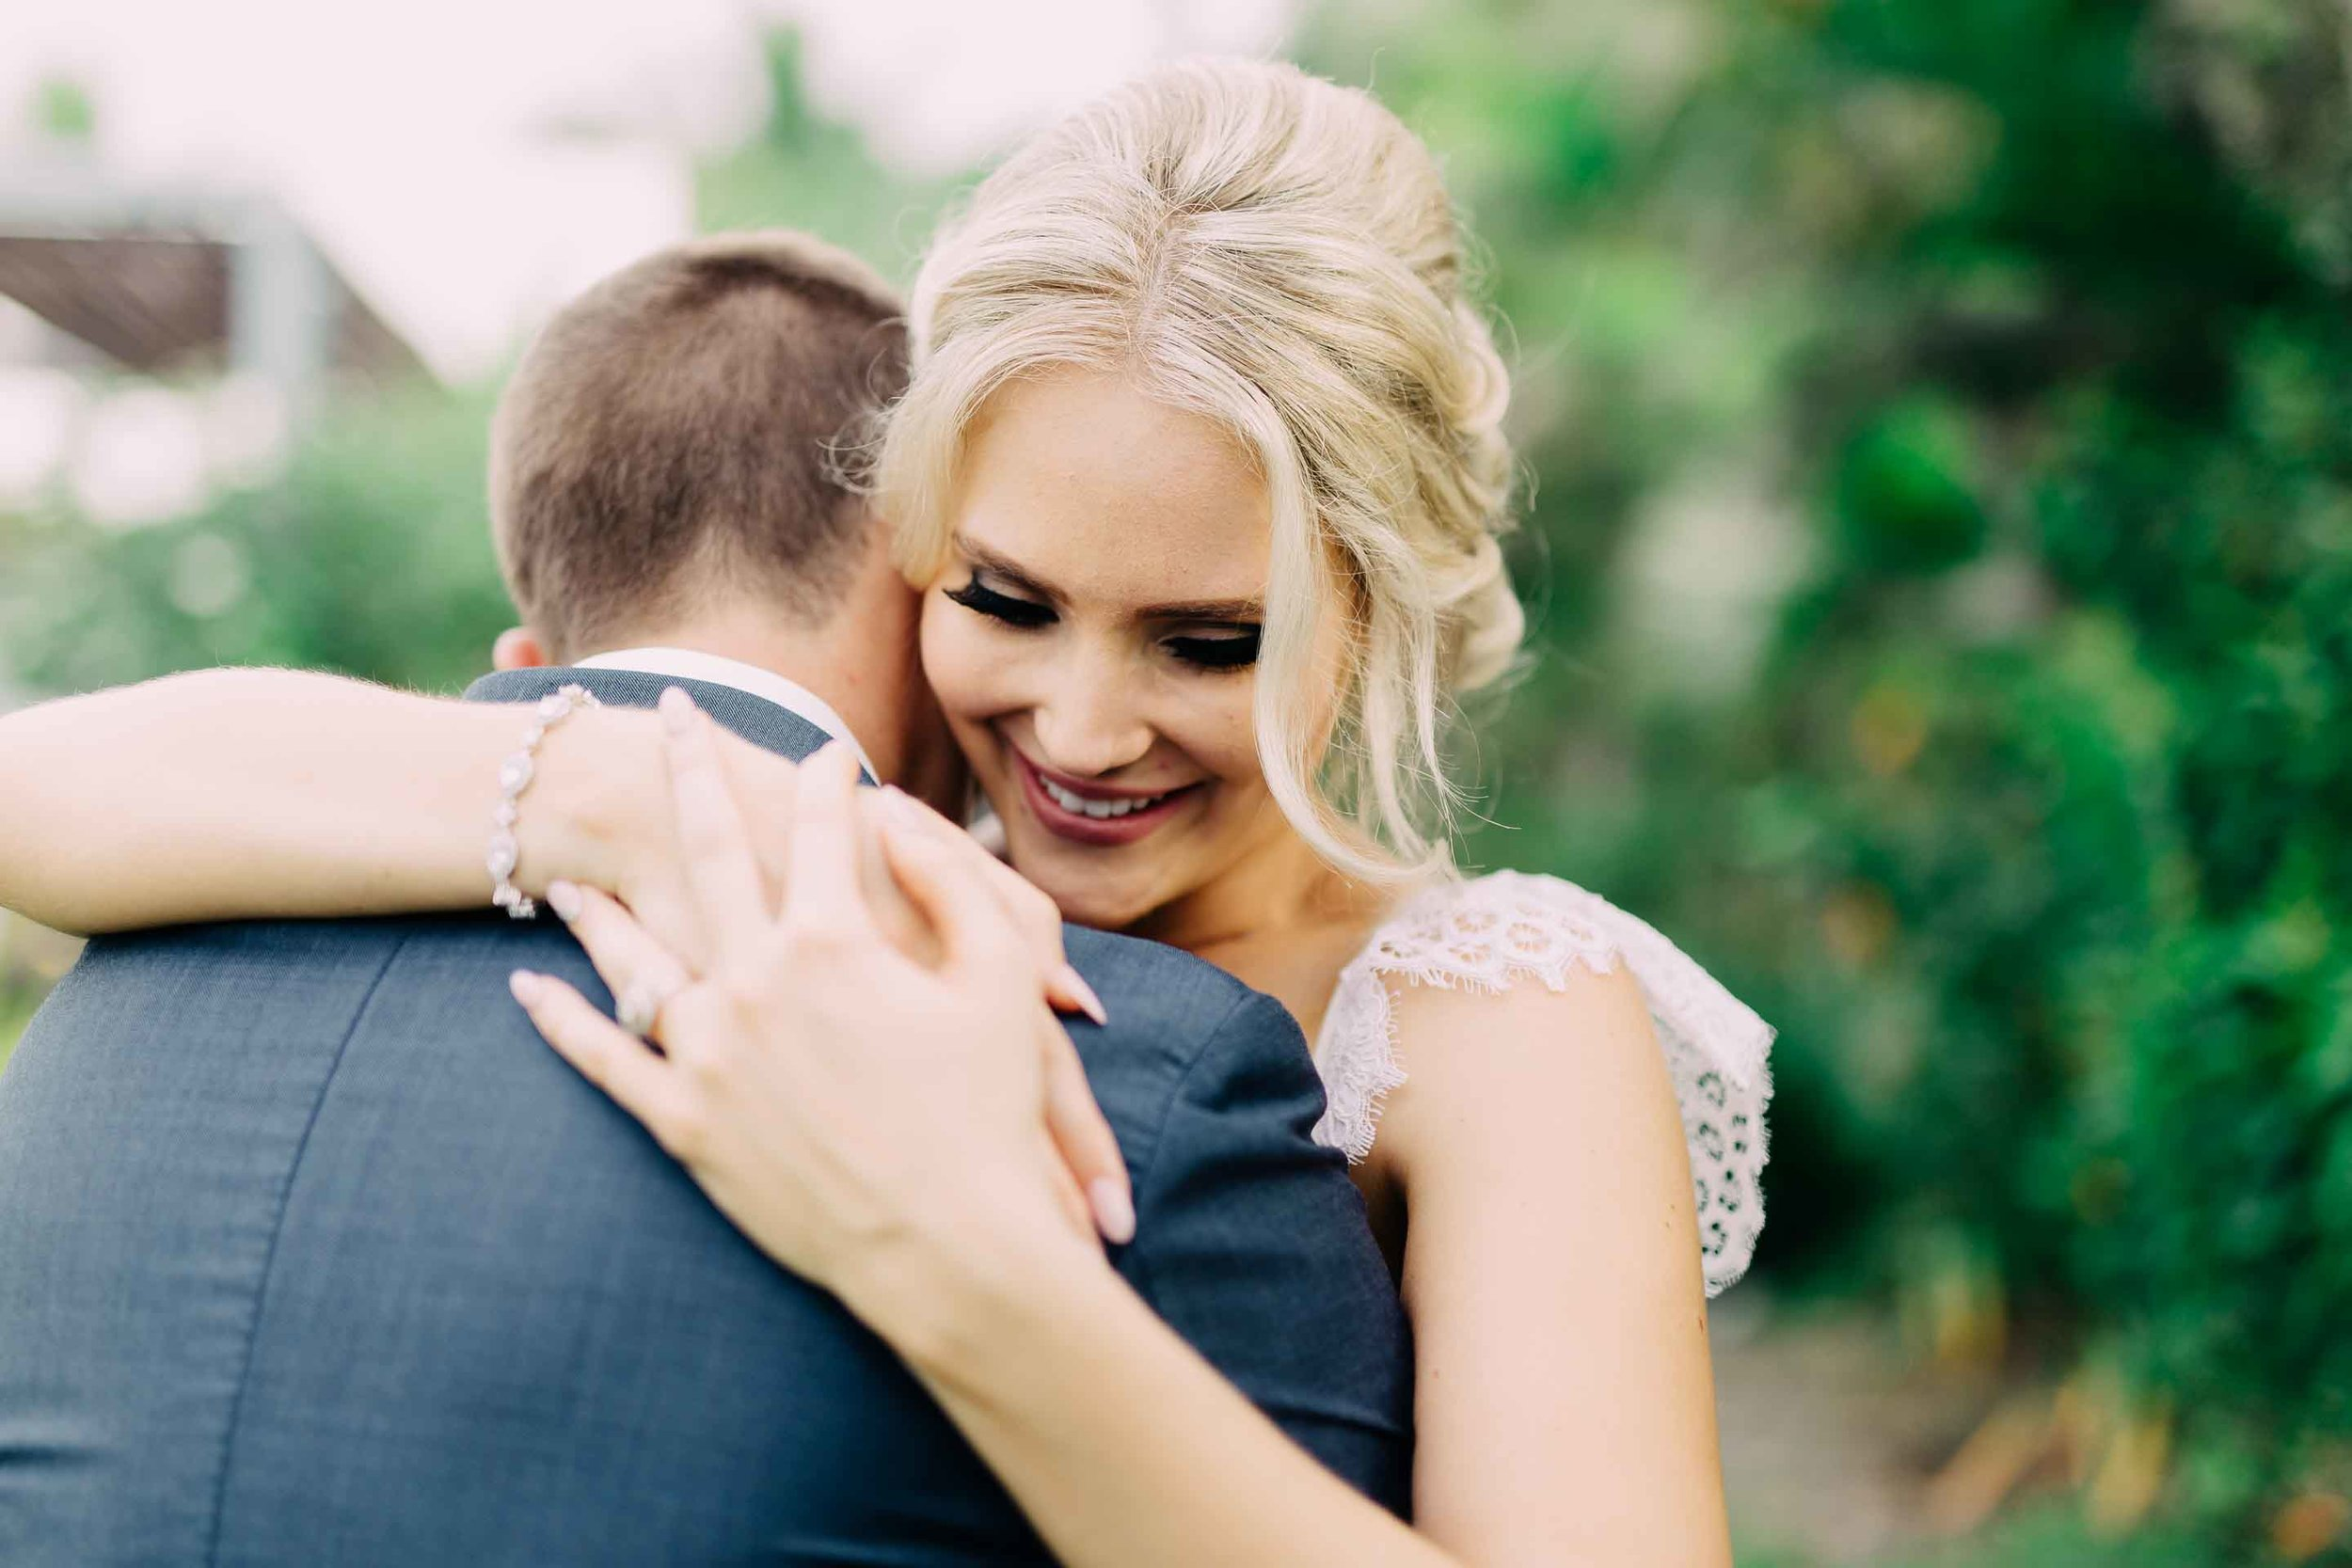 A cute moment between the newlyweds smily bride embraces her new husband.